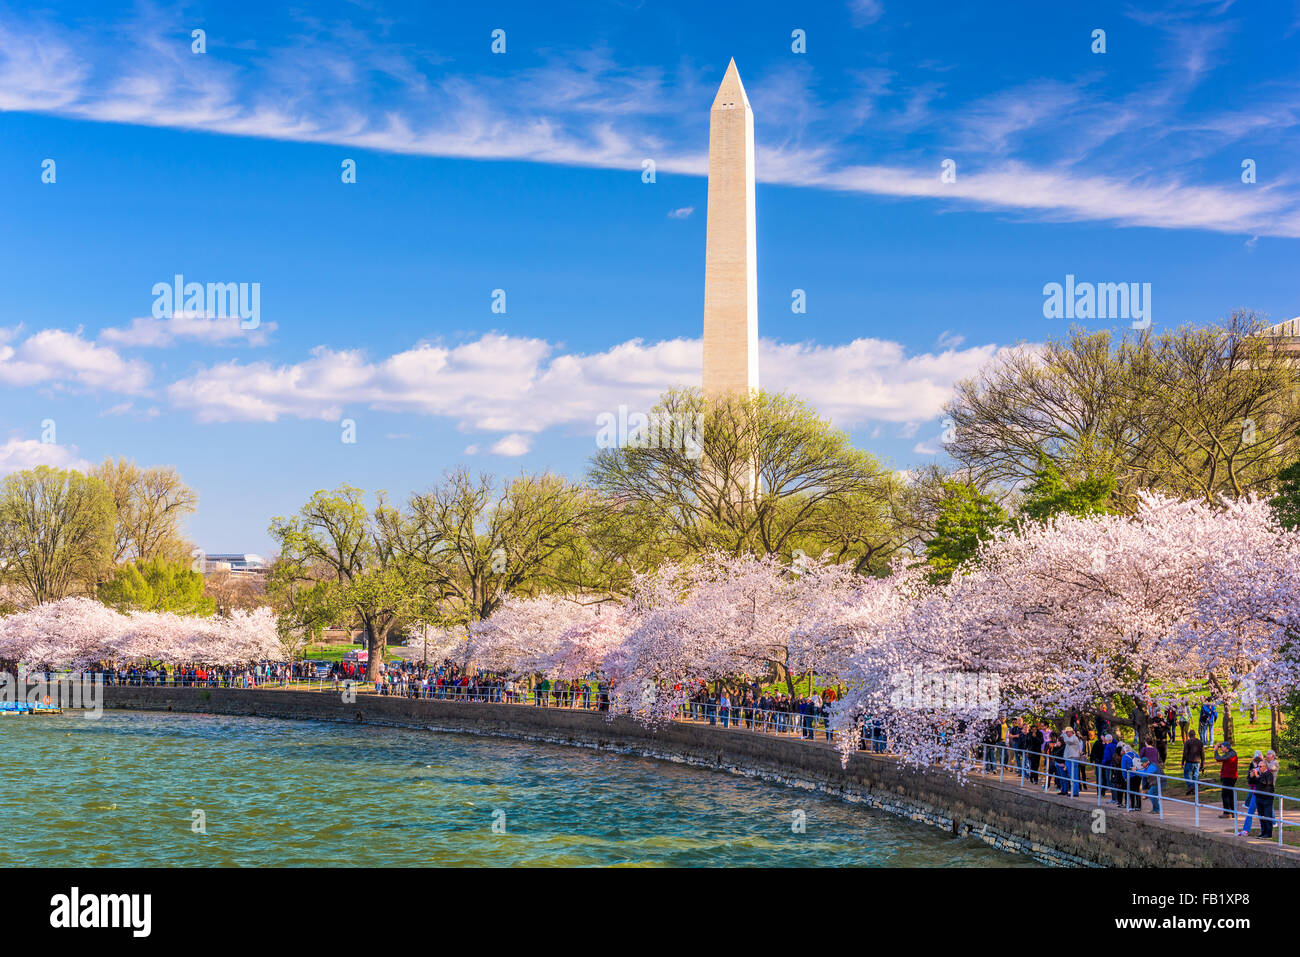 WASHINGTON DC - APRIL 10, 2015: Crowds walk below cherry trees and the Washington Monument during the spring festival. - Stock Image